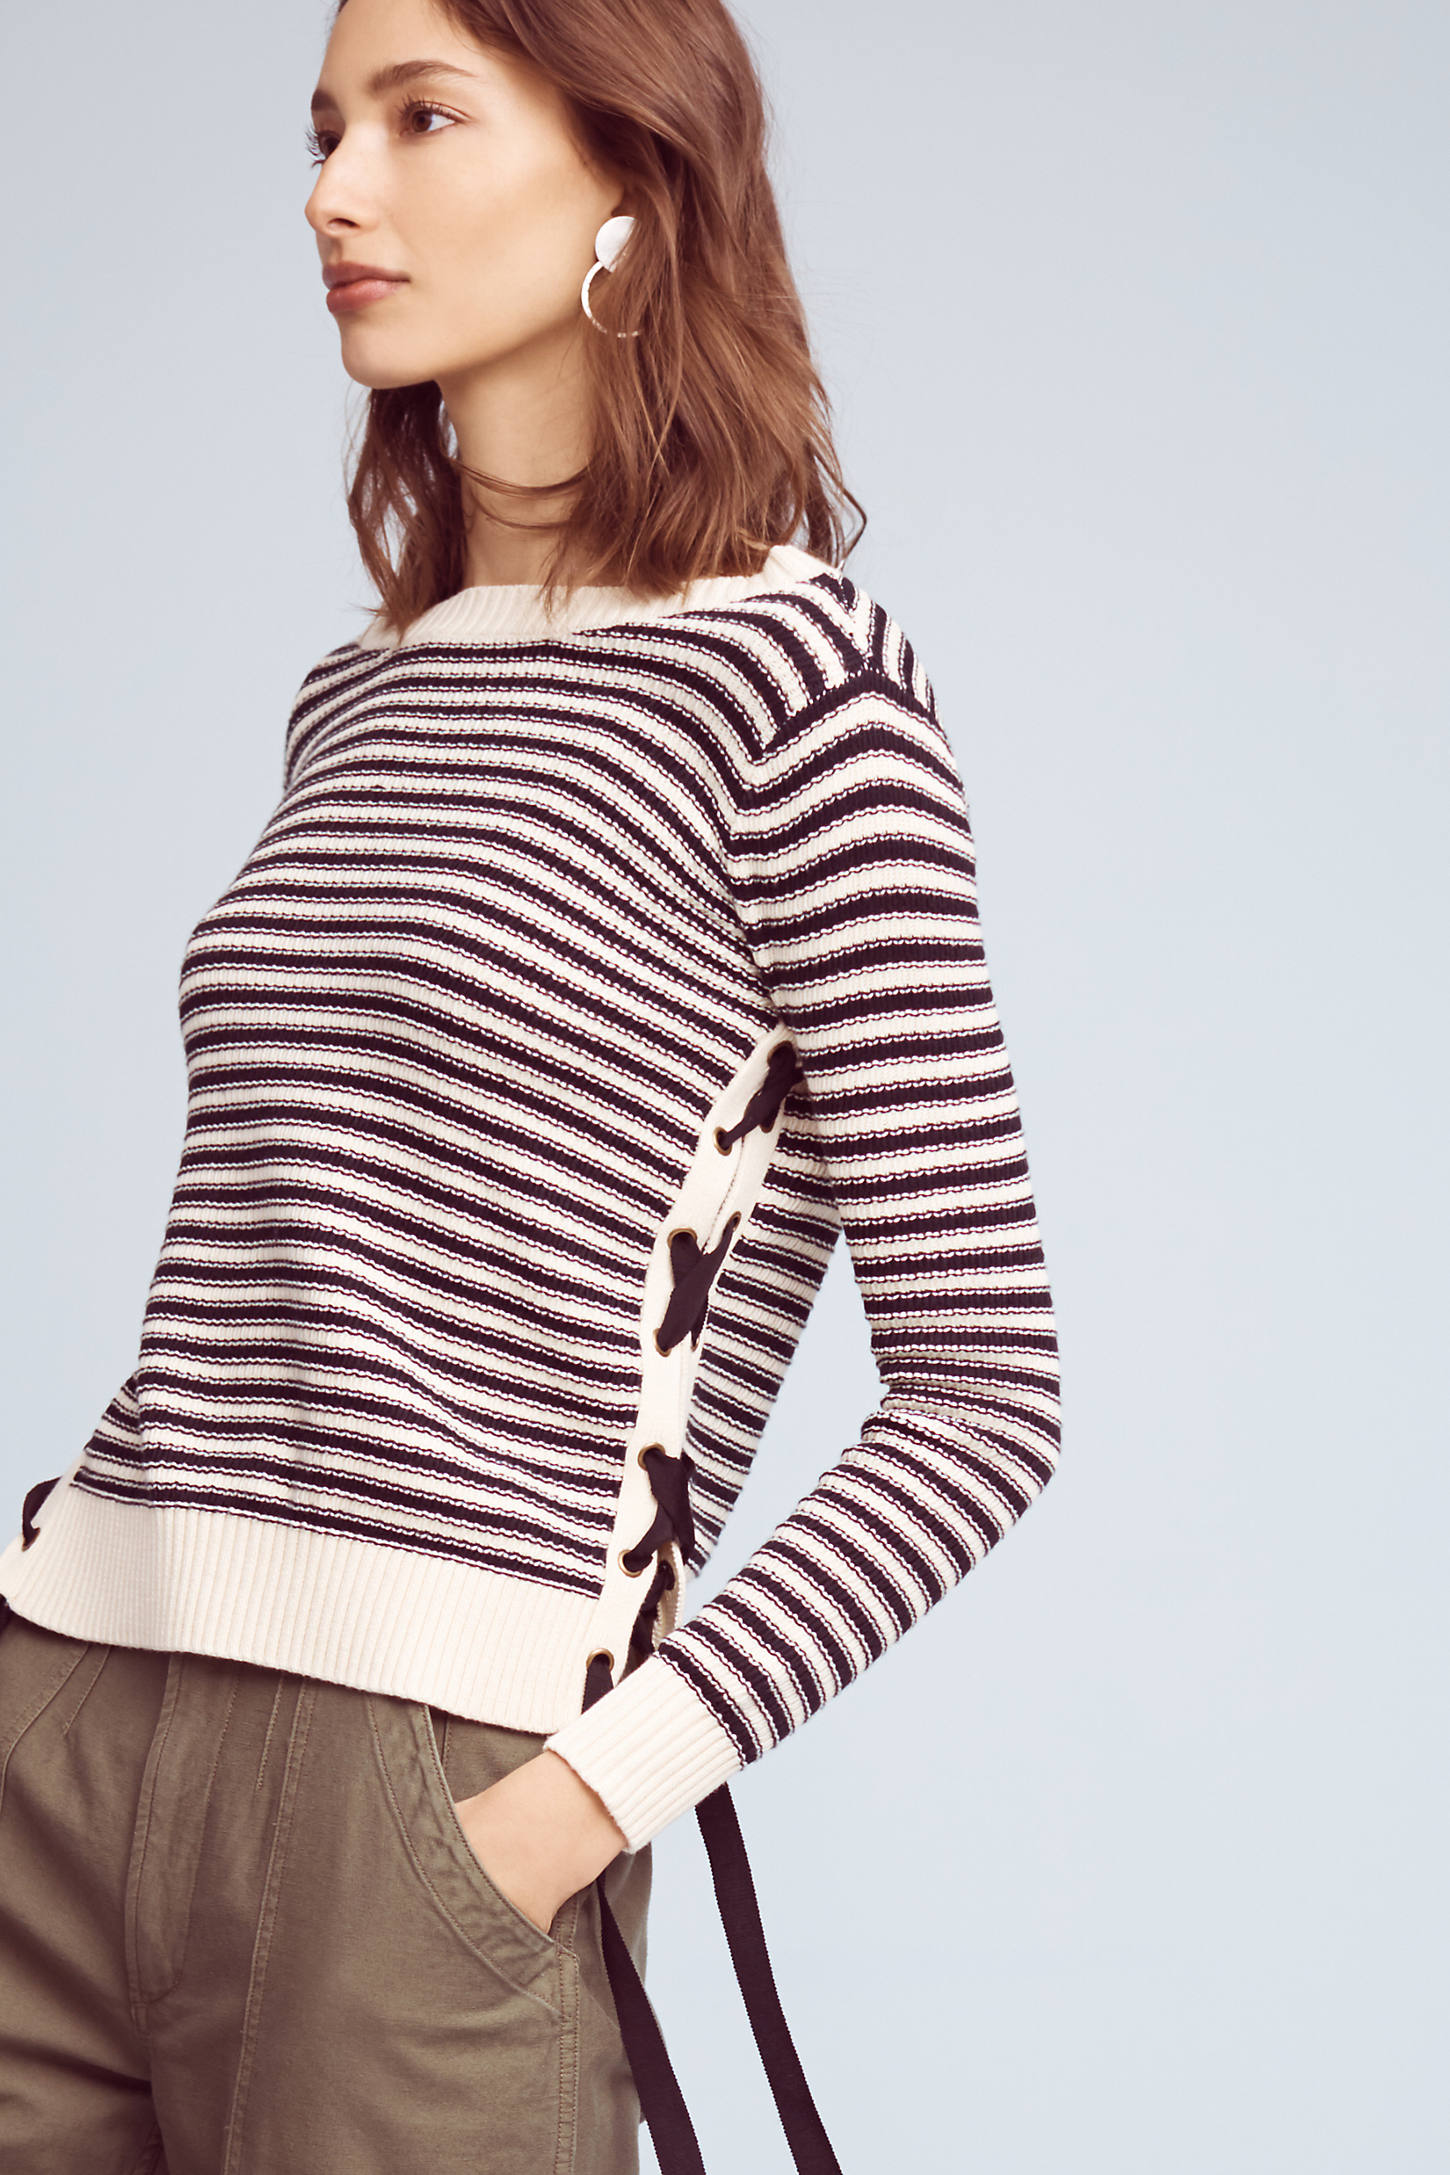 Ribboned & Striped Sweater